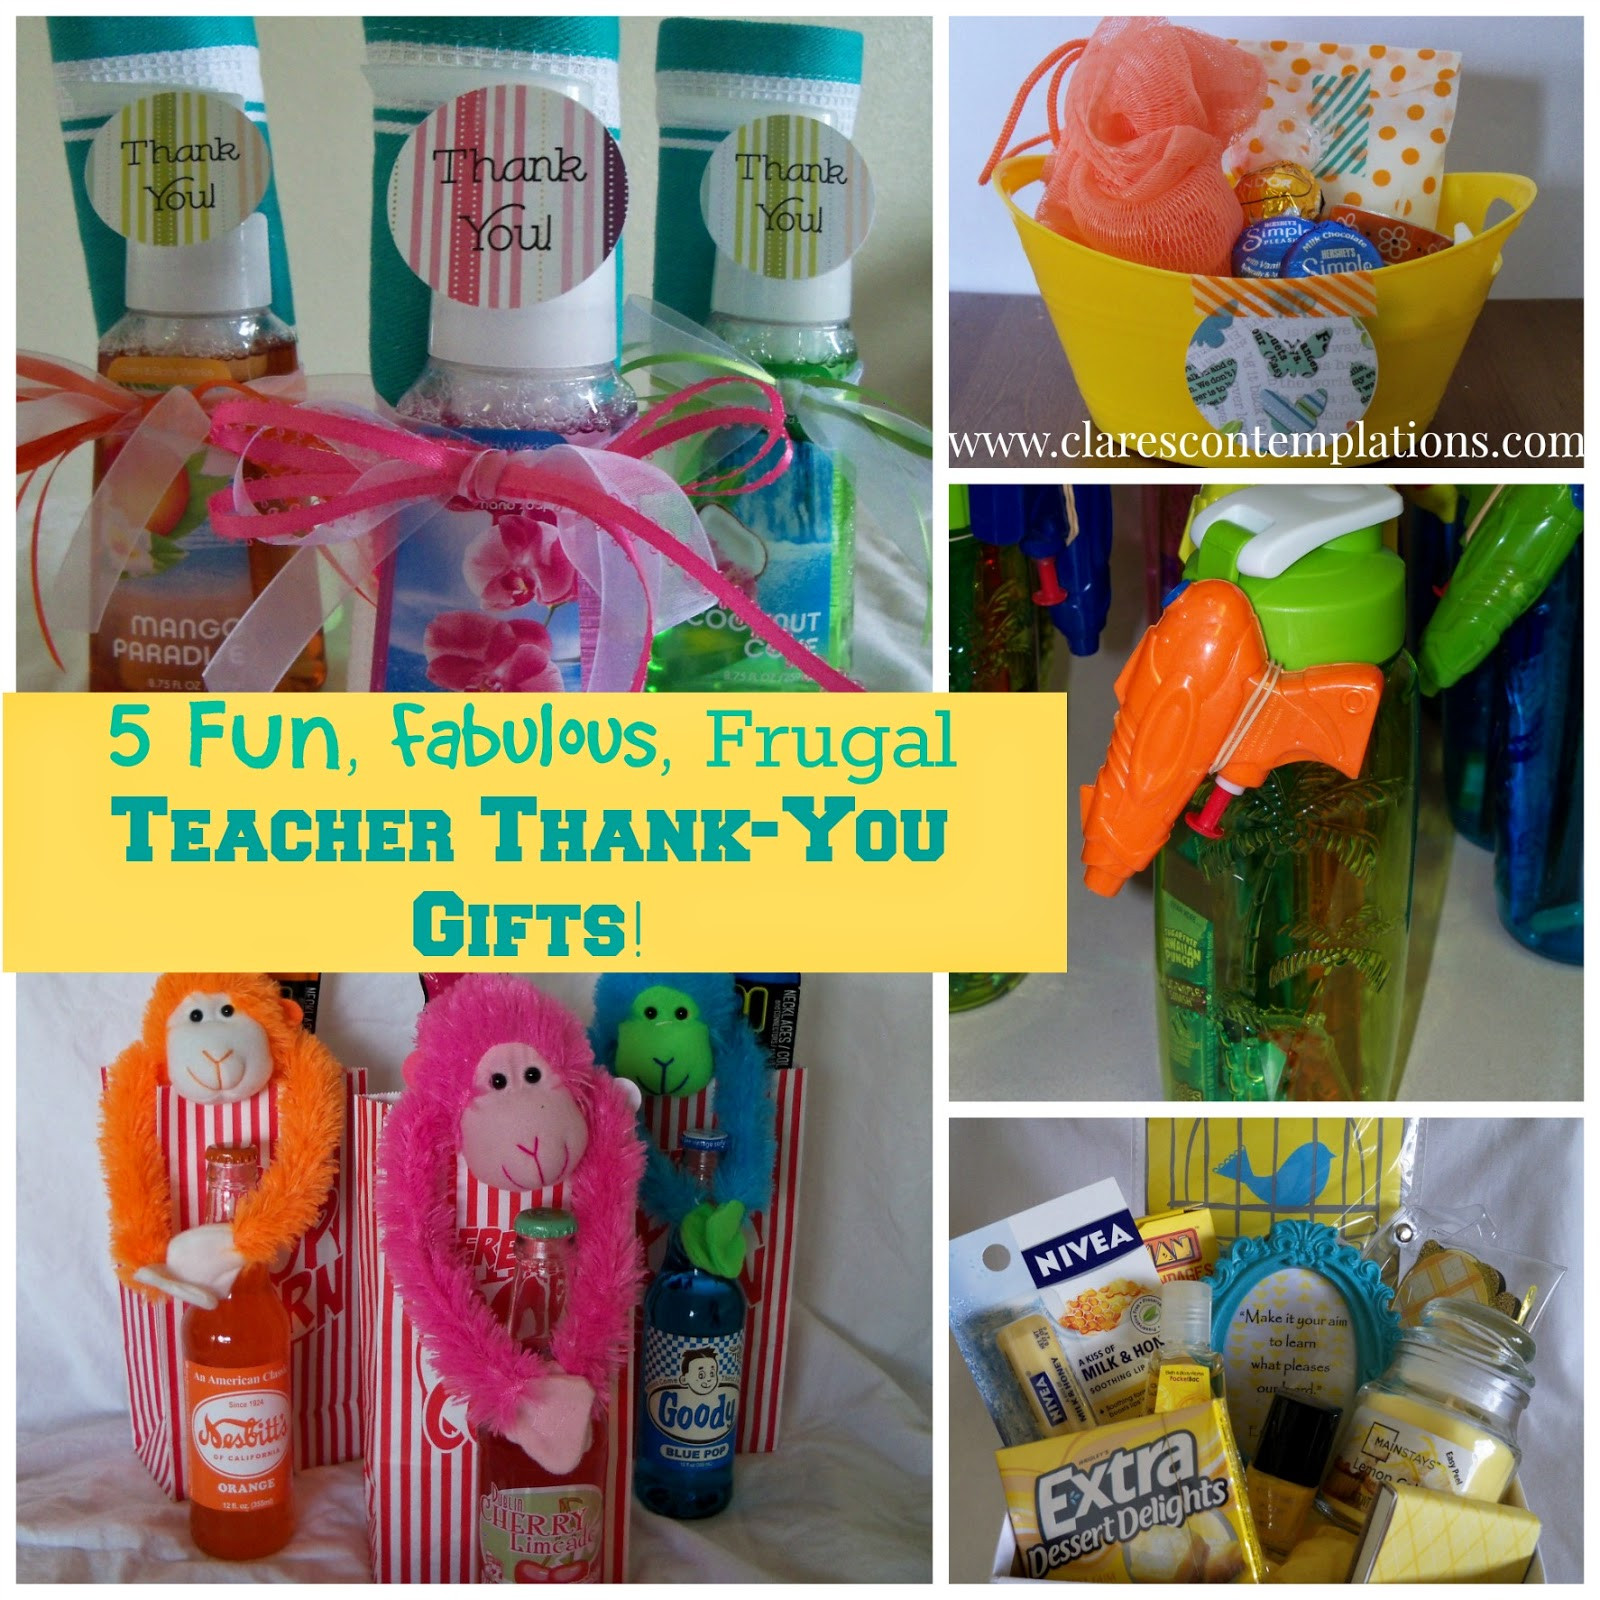 Teacher Thank You Gift Ideas  Clare s Contemplations 5 Unique Thoughtful and Frugal